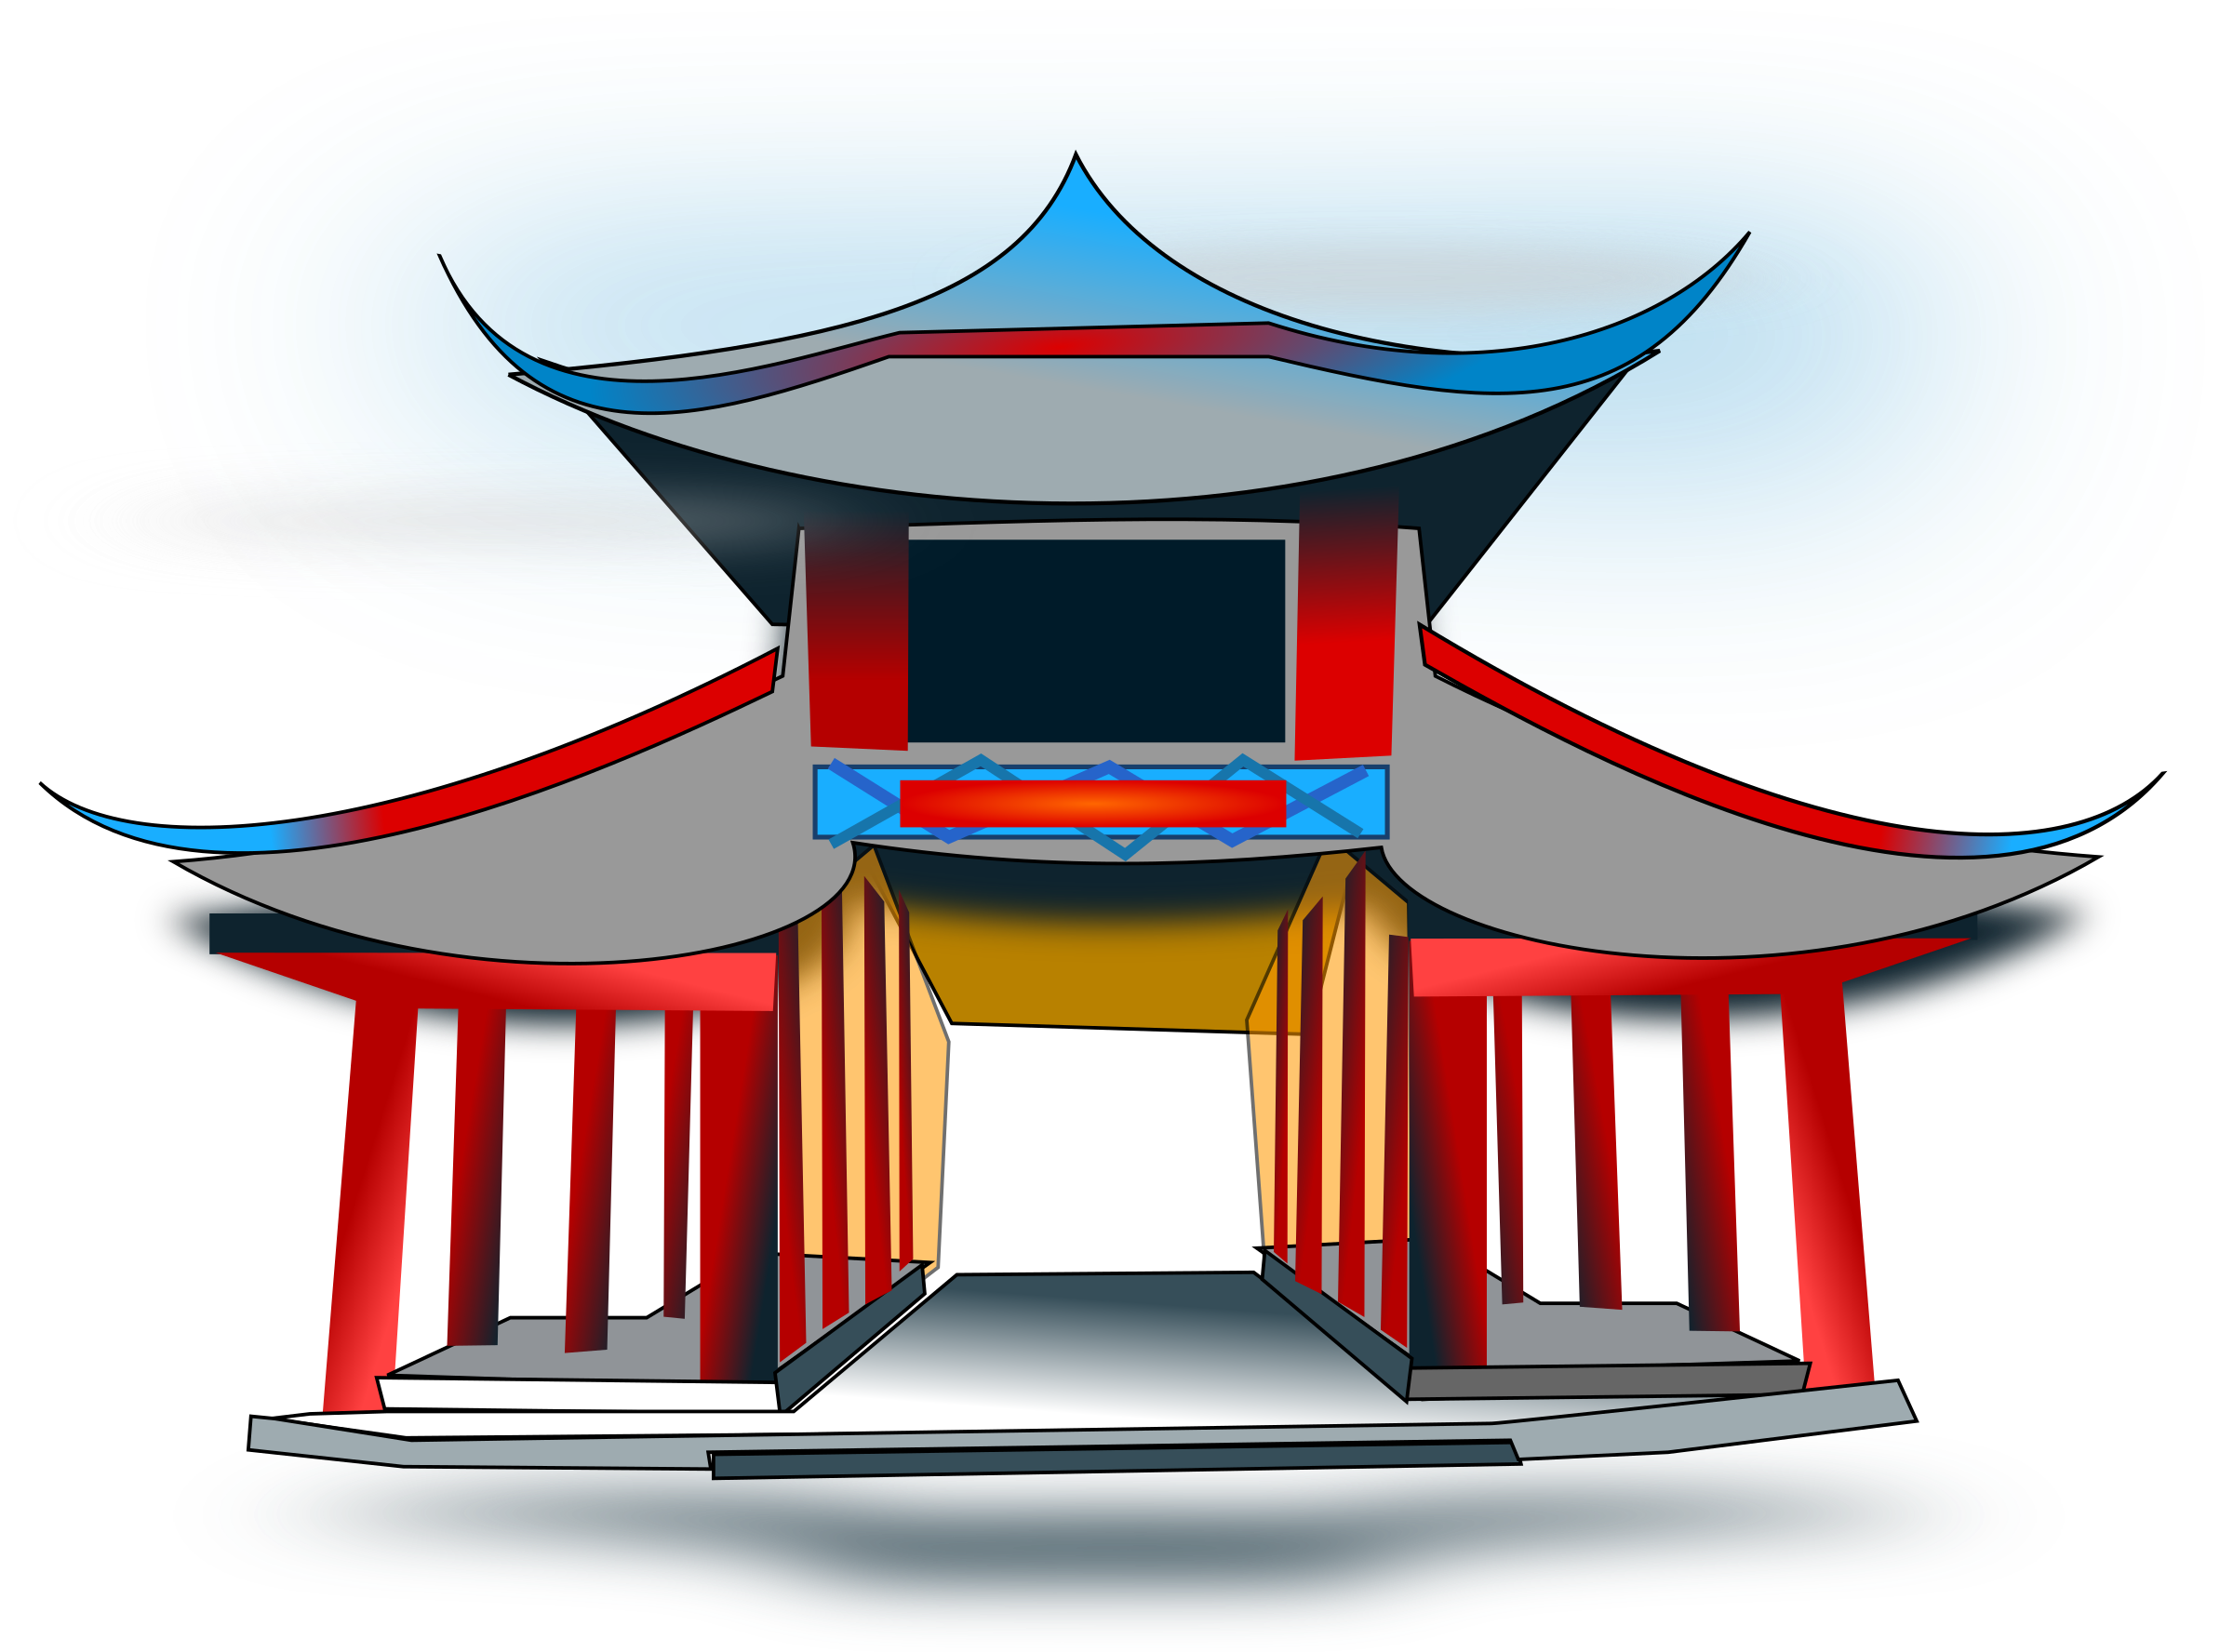 Temple clipart chinese temple Chinese Architecure Clipart Architecure Chinese